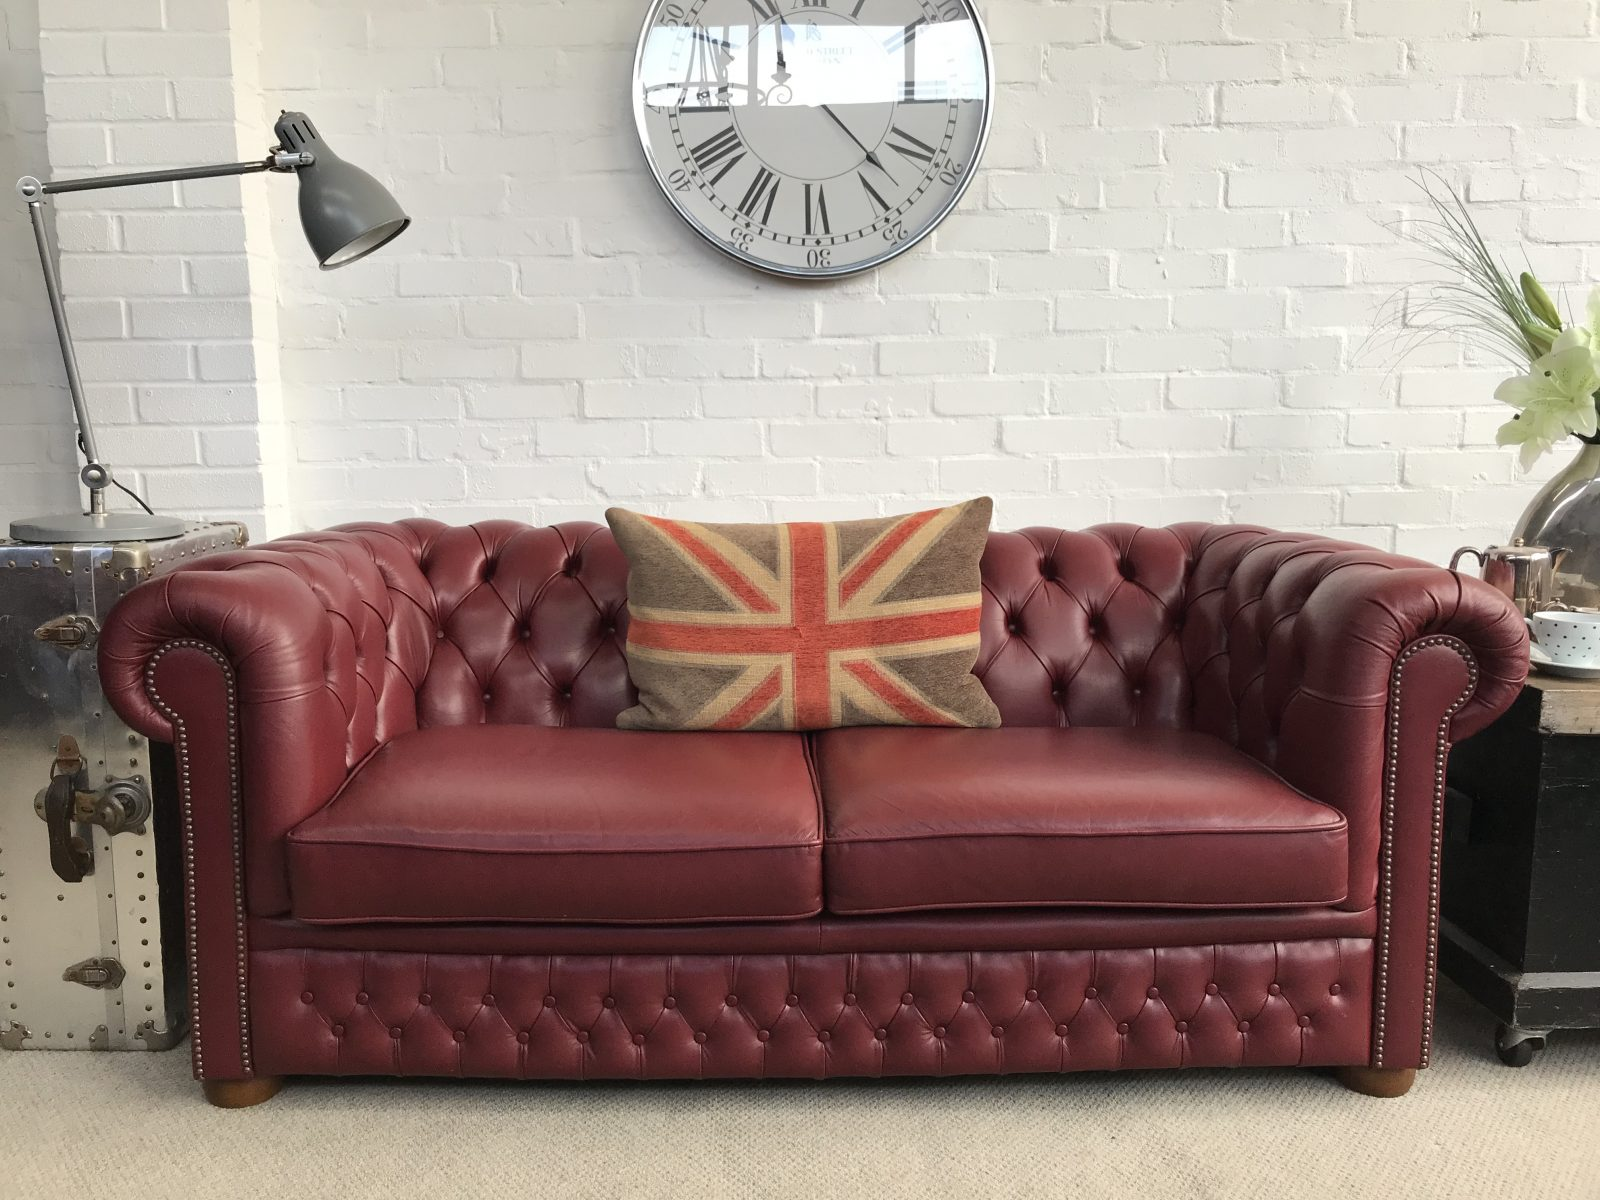 Stunning Burgundy 2/3 seater Chesterfield Sofa. – Chesterfields at ...